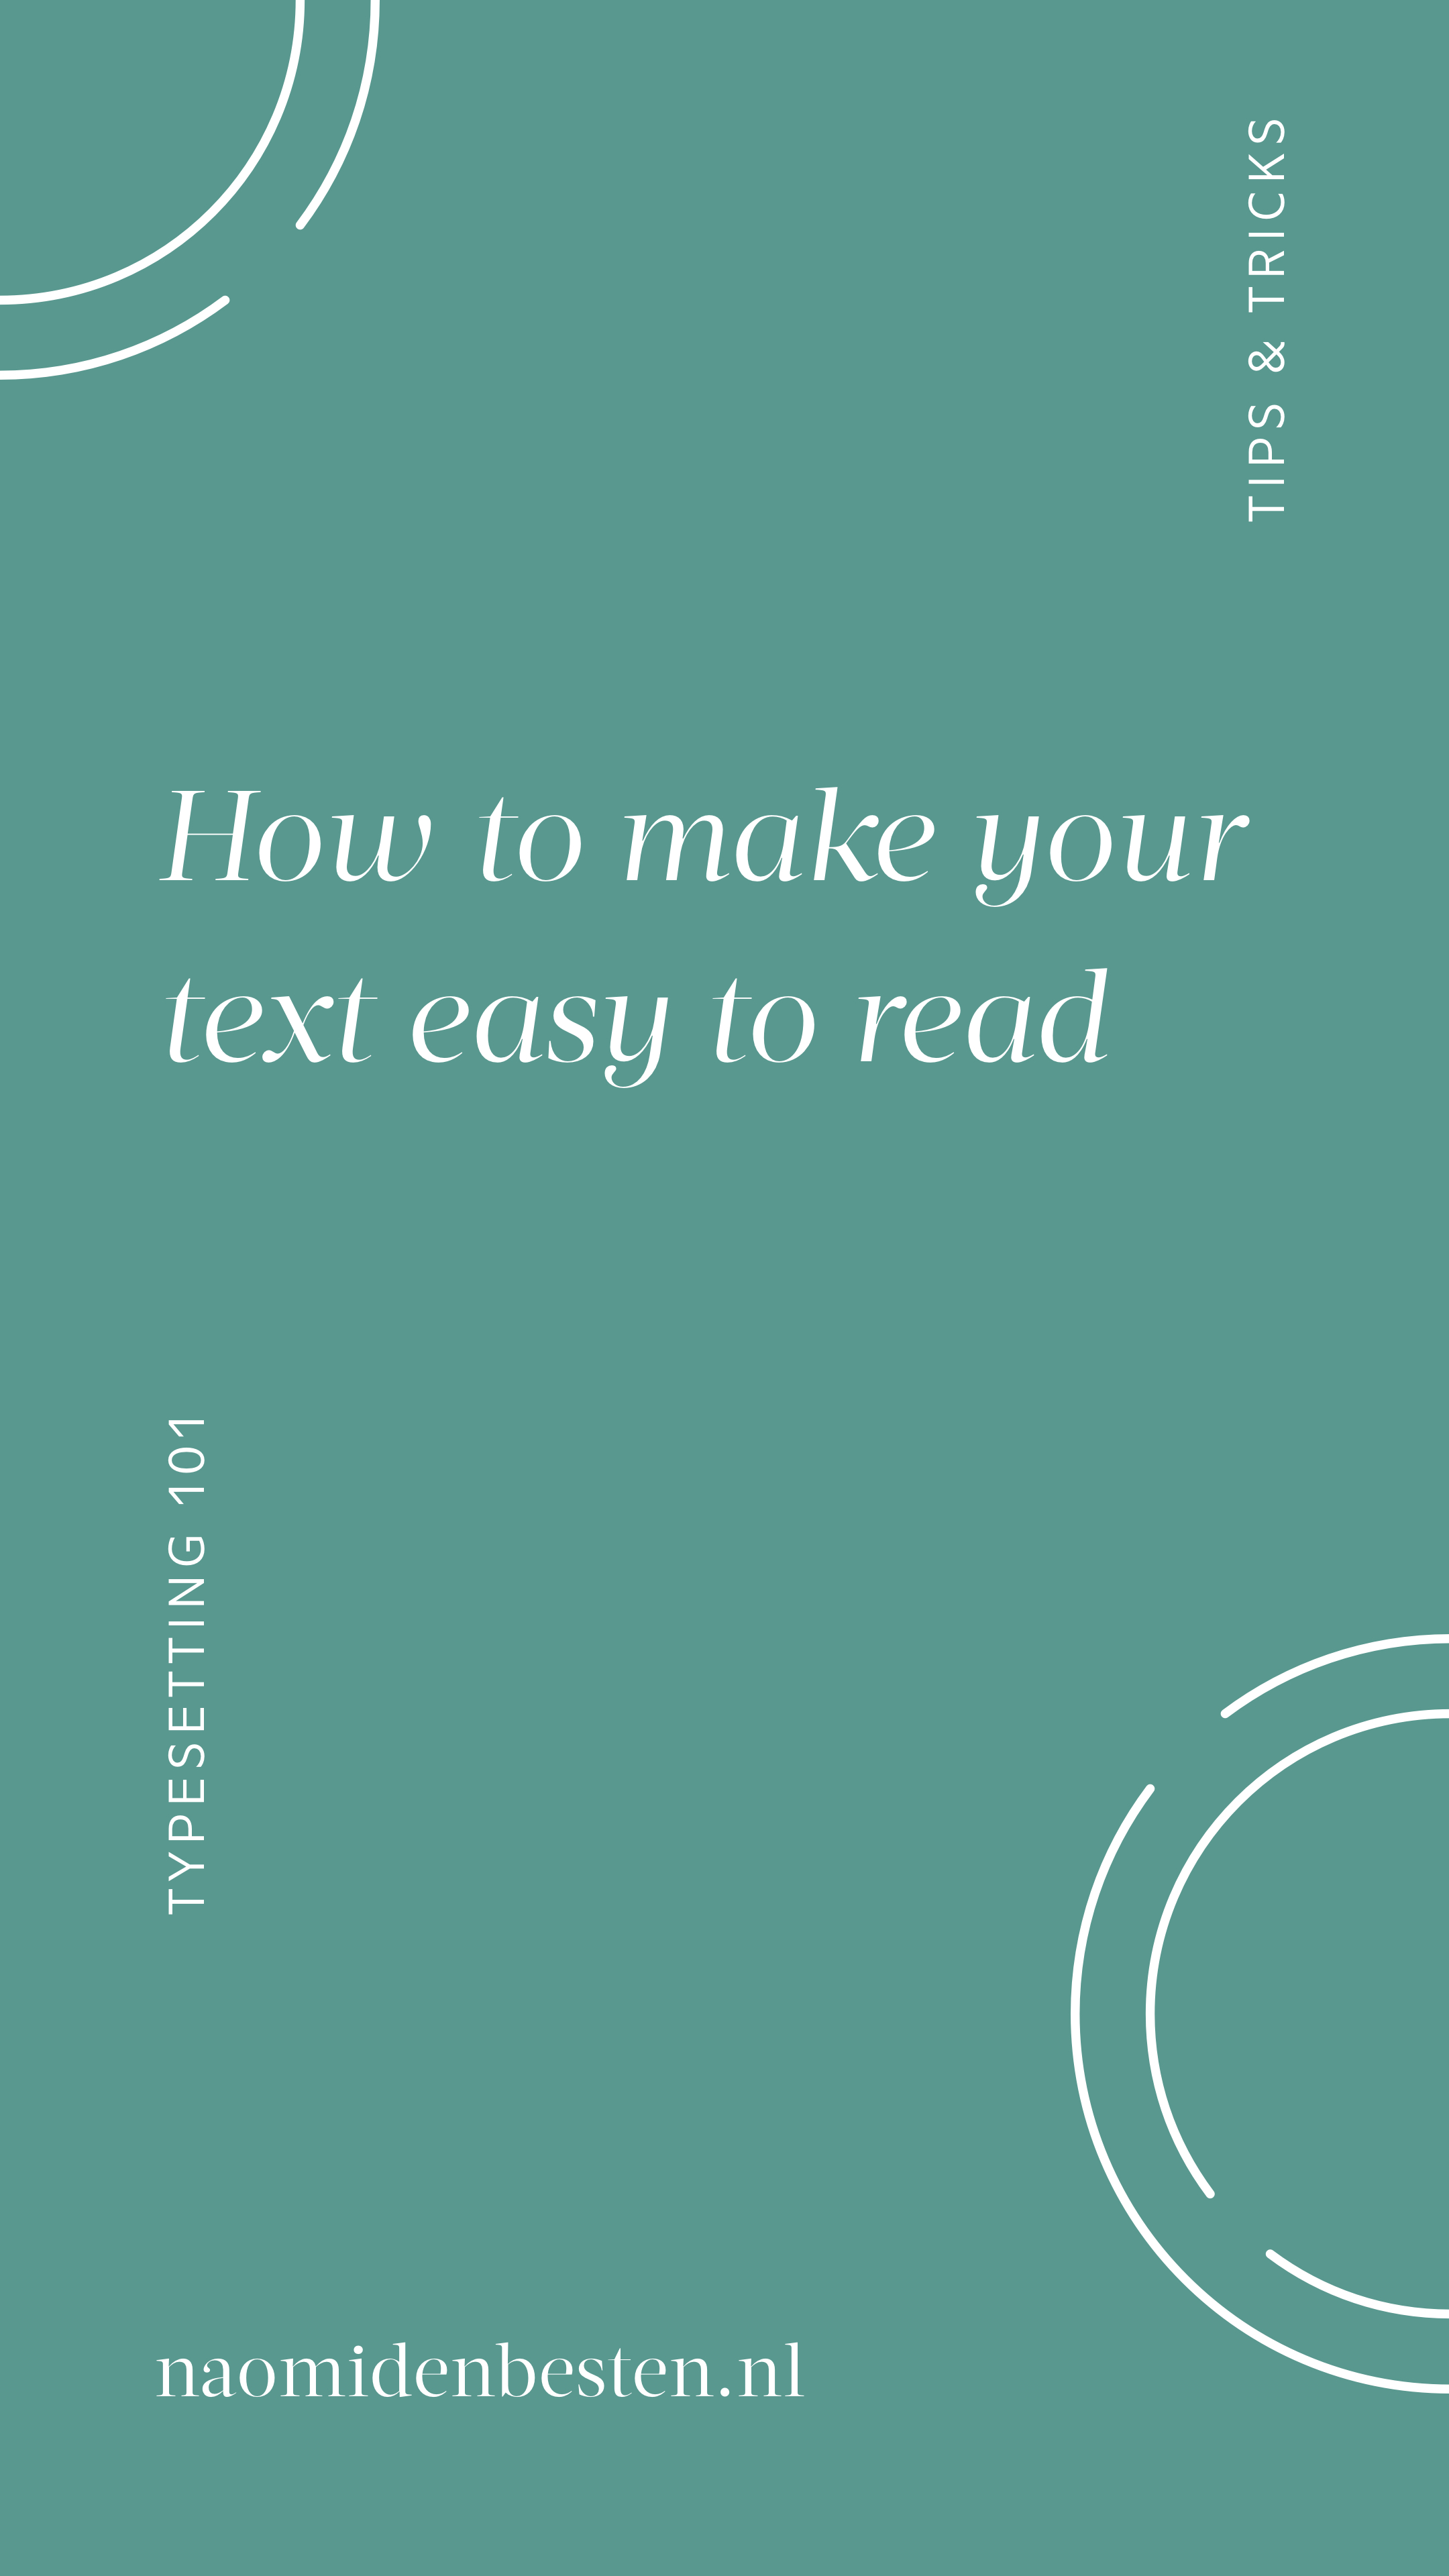 How to make your text easy to read.jpg